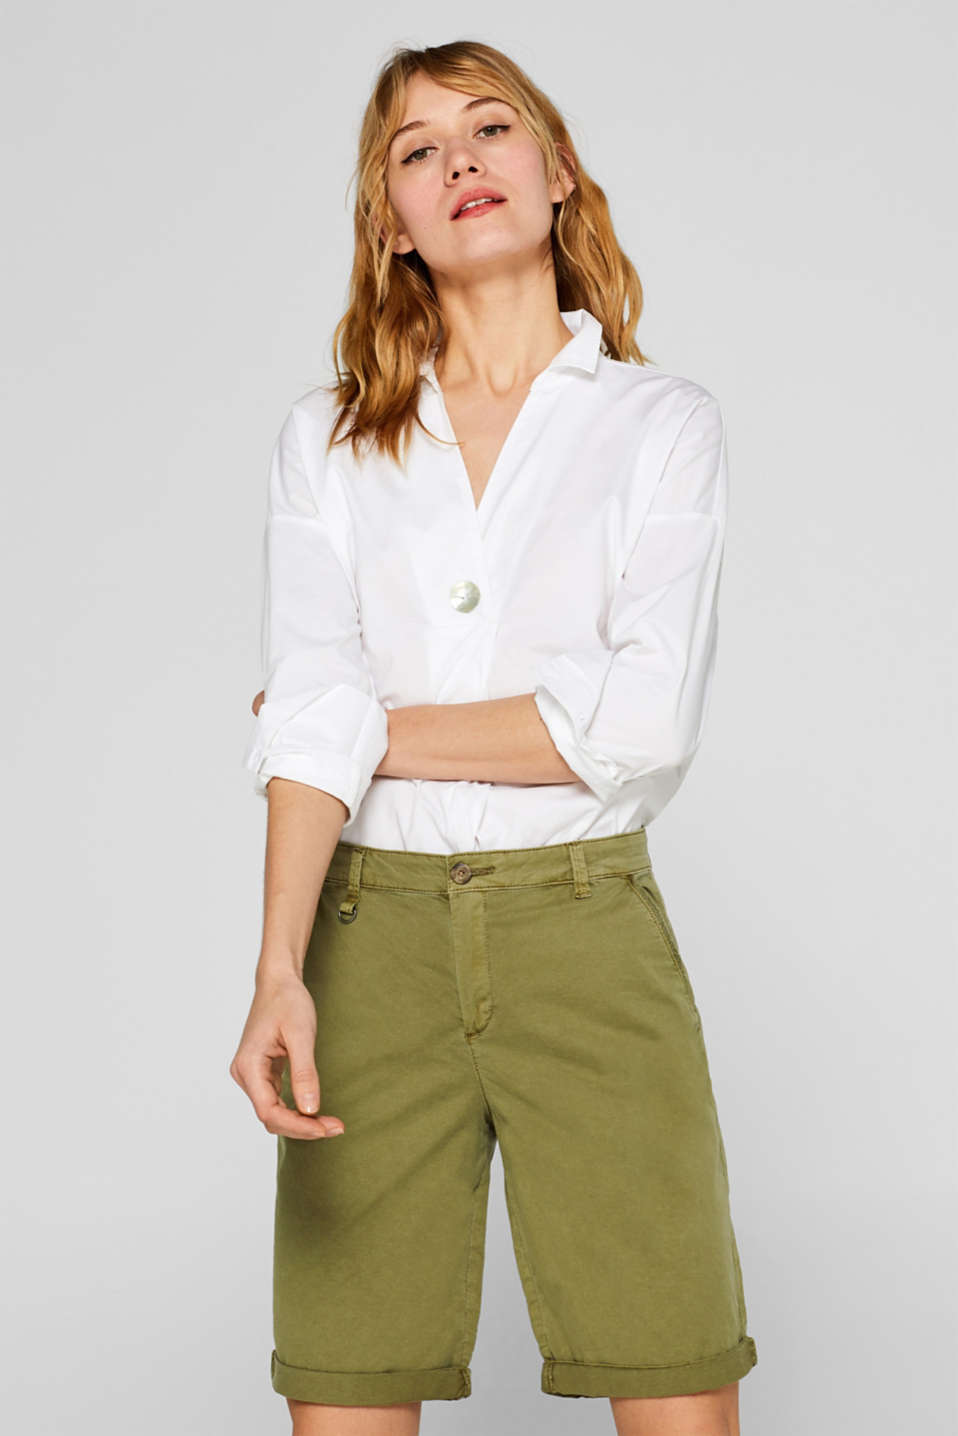 Esprit - Stretch bermudas with woven tape trim